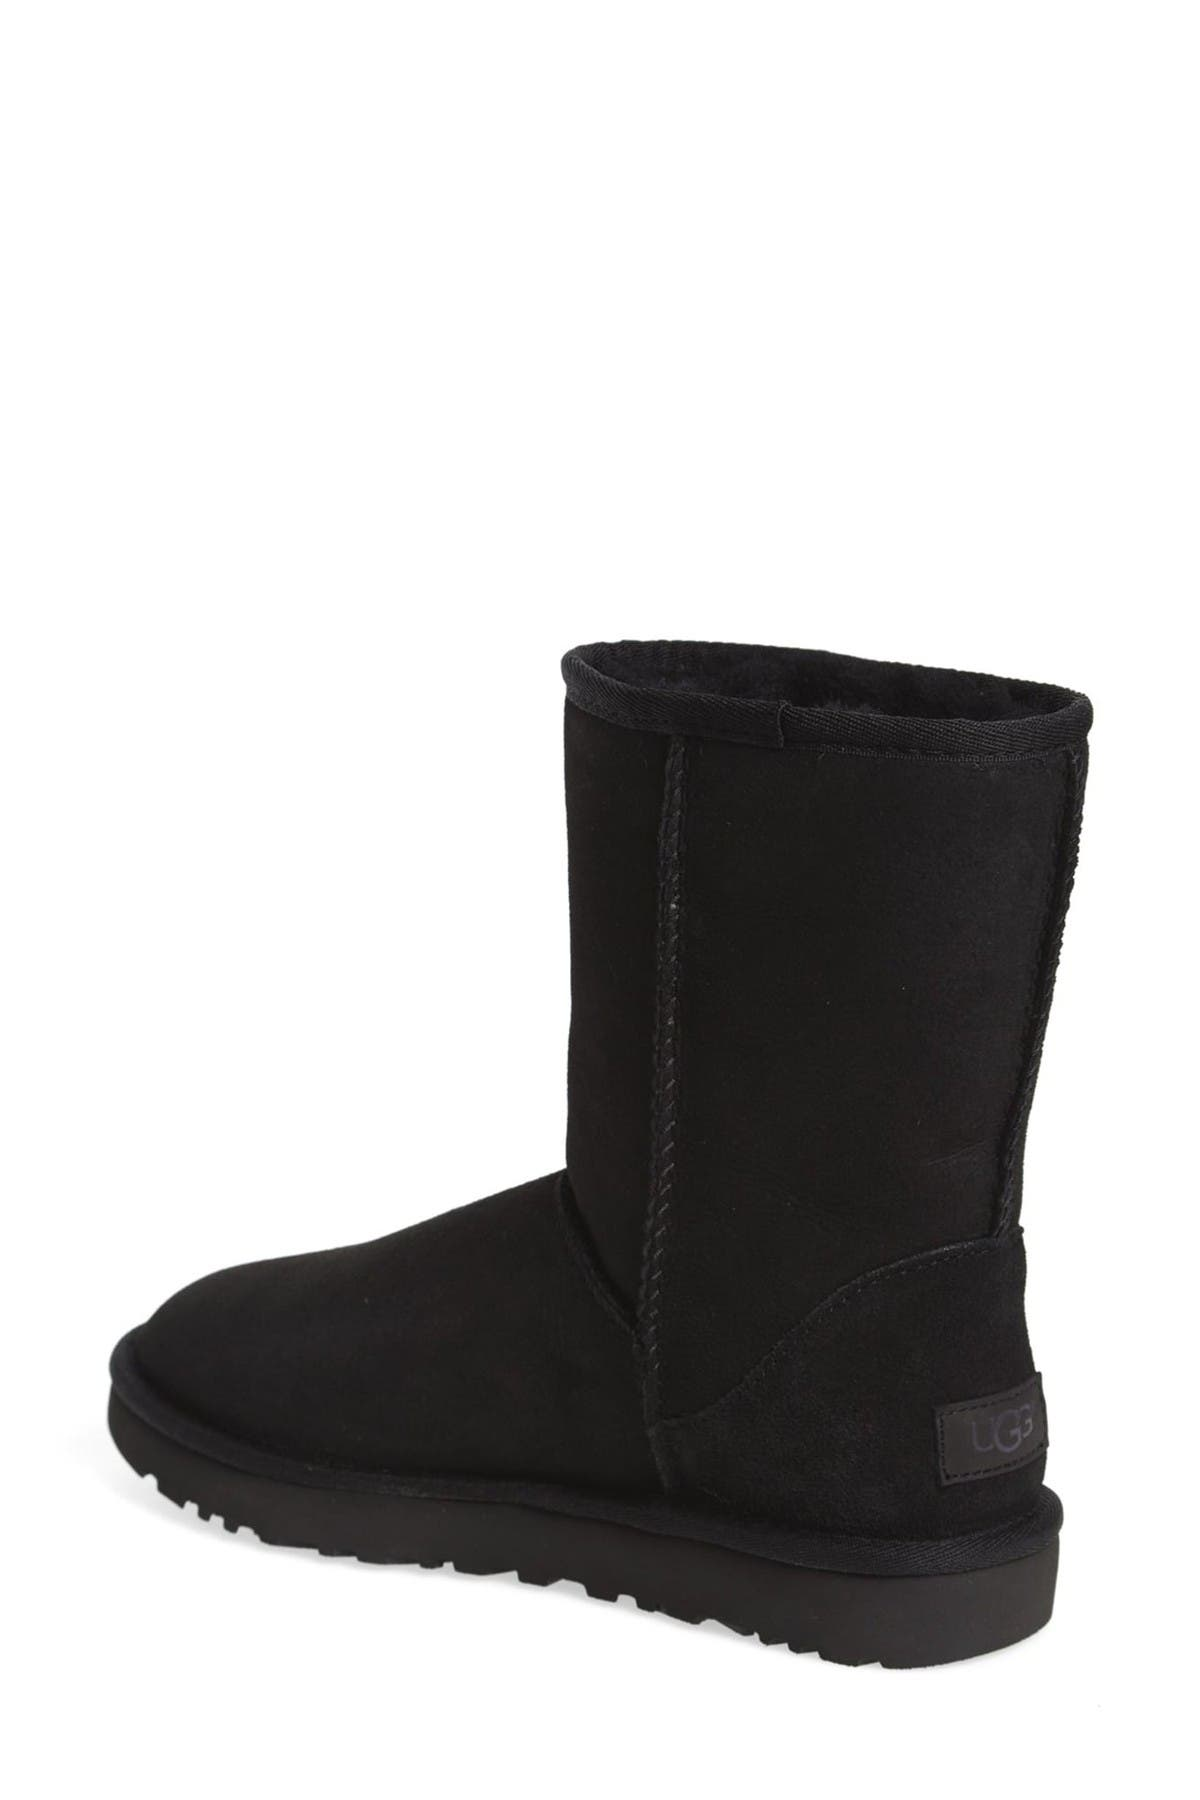 UGG Essential Short UGGpure Wool Lined Leather Boot